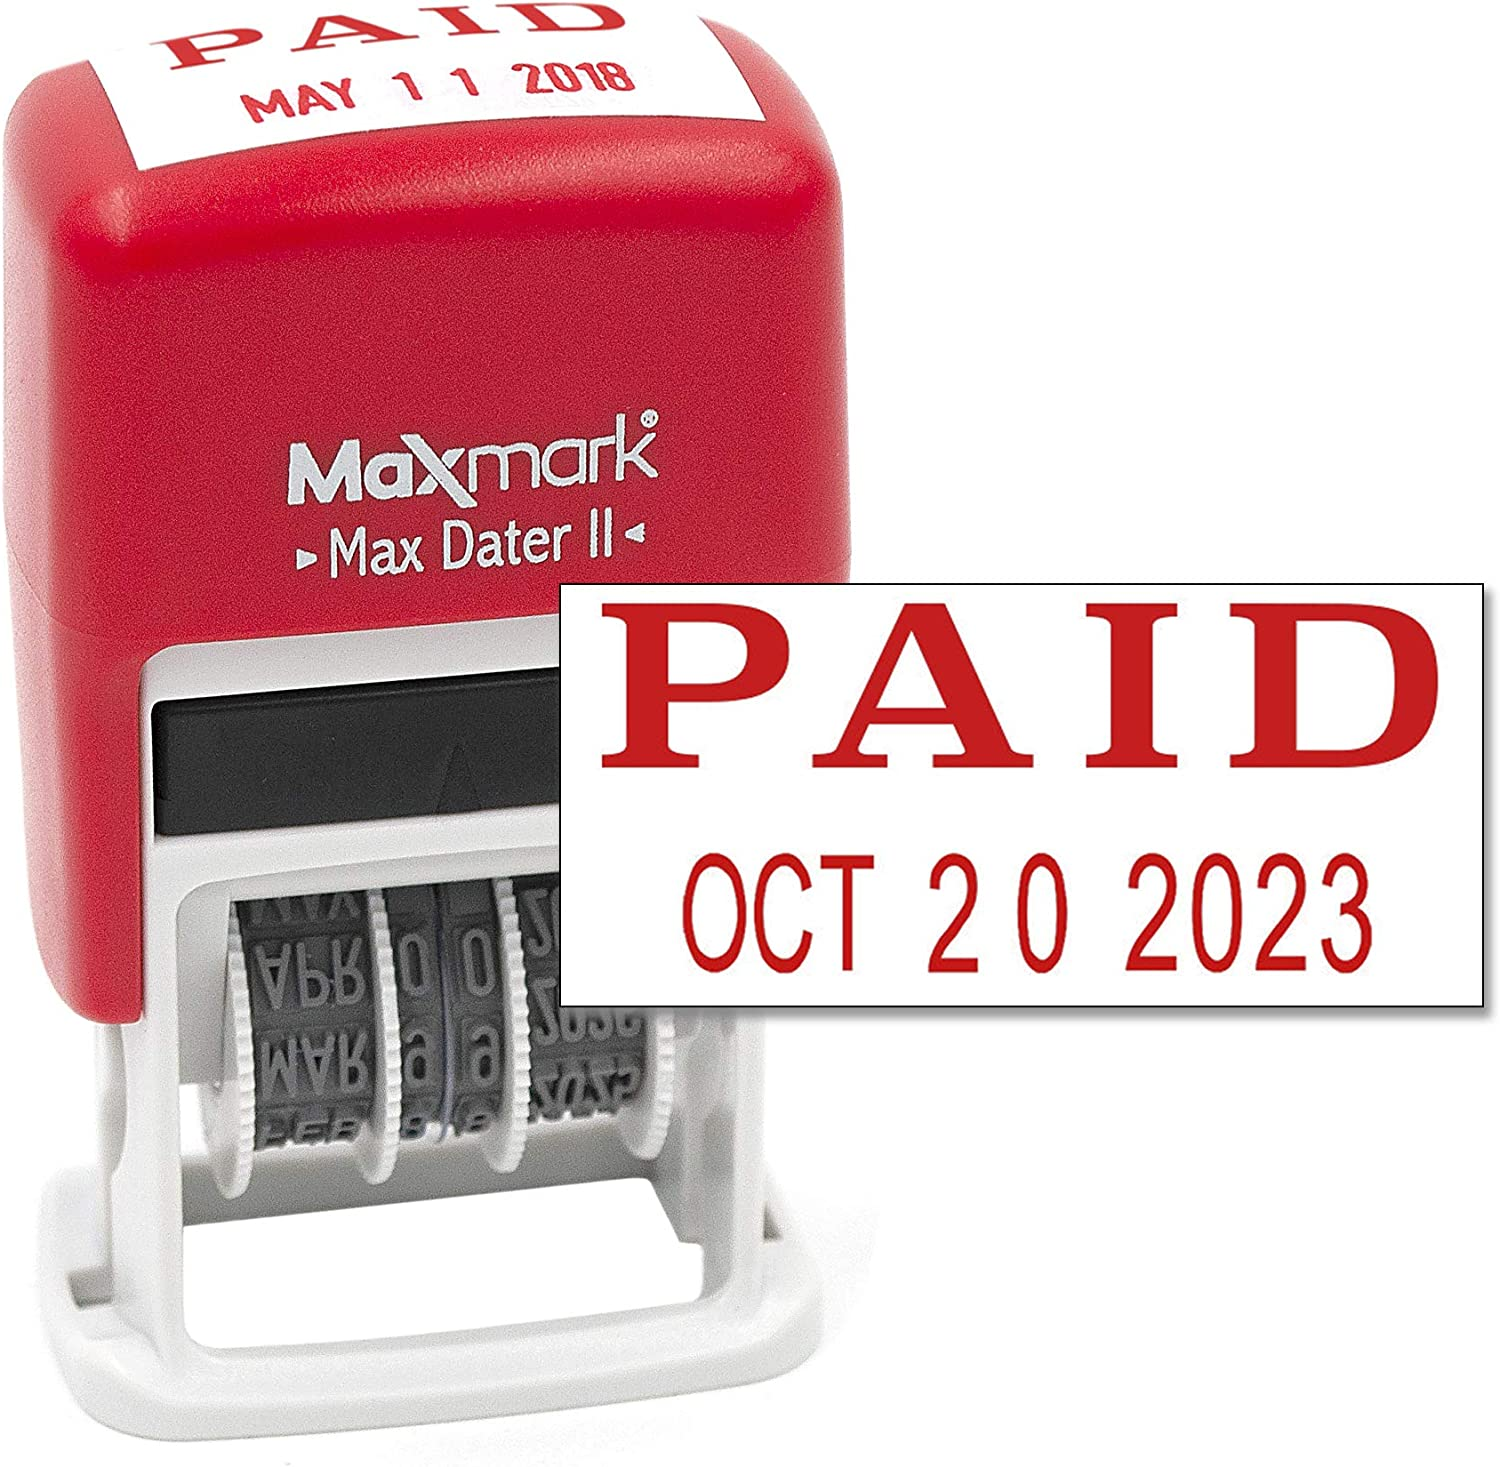 MaxMark Self-Inking Rubber Date Office Stamp with Paid Phrase & Date - RED Ink (Max Dater II), 12-Year Band